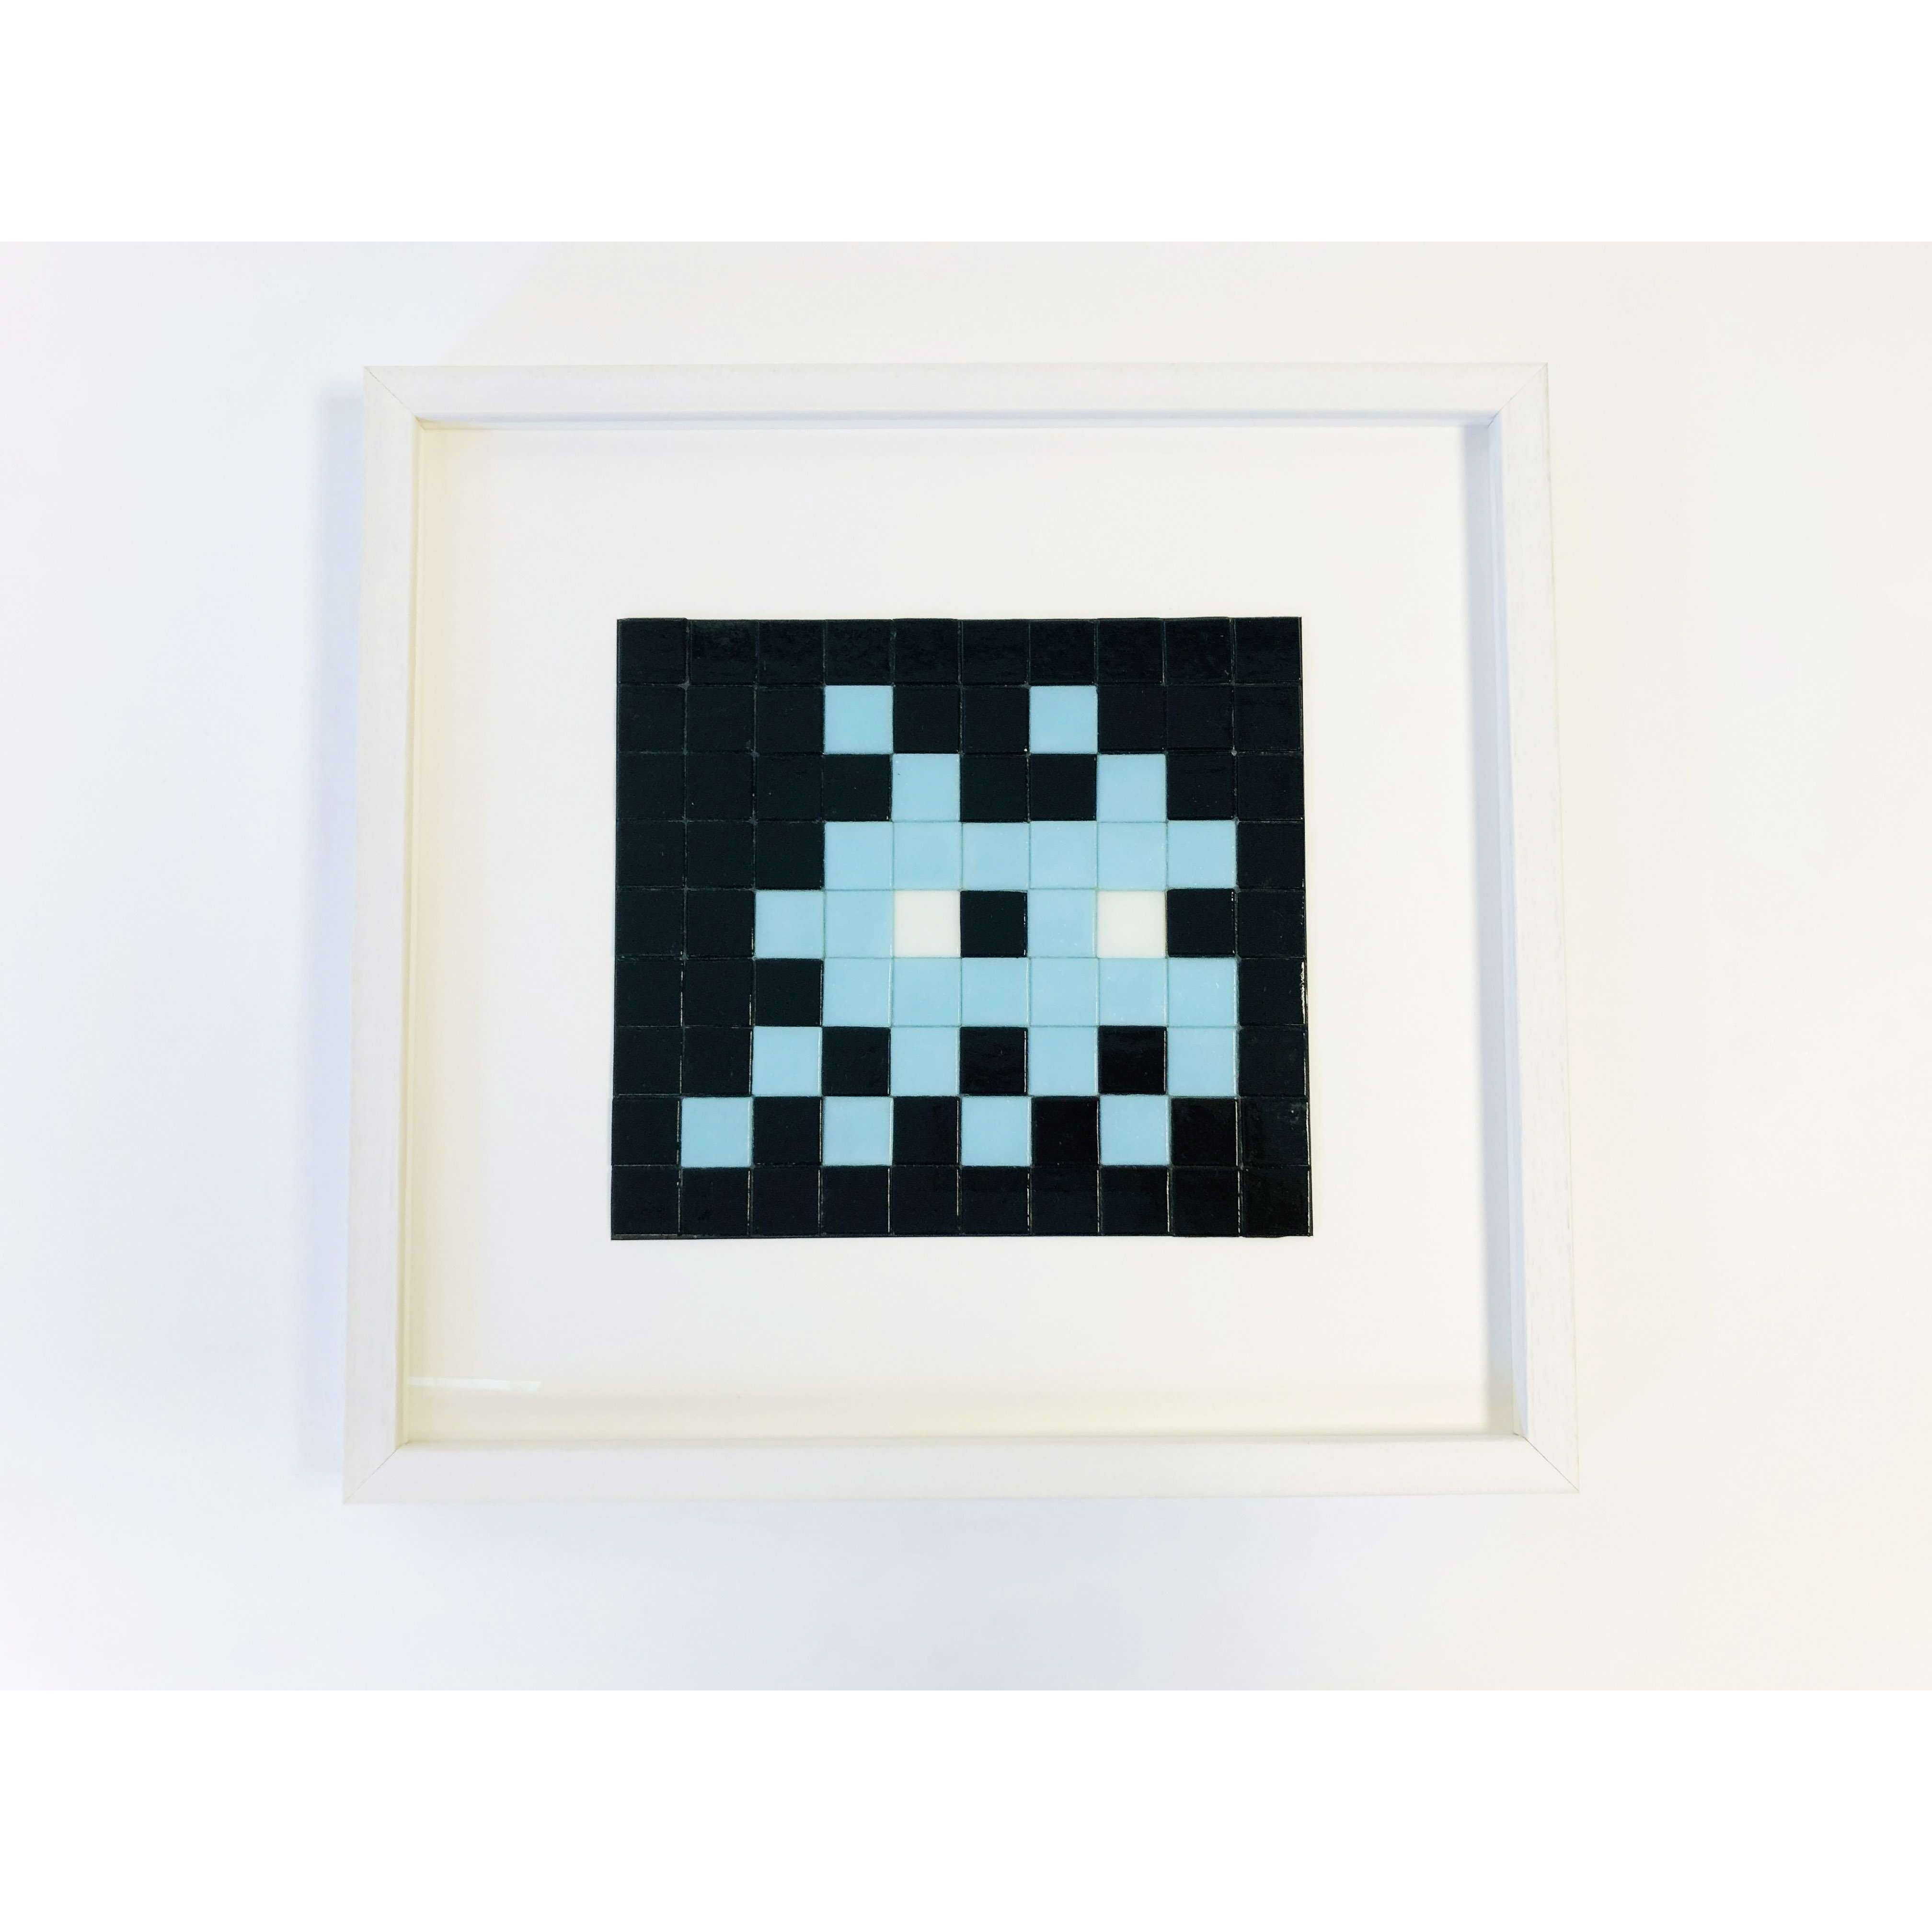 Invader, Invasion Invasion Kit #6 Runner, 2007 | Lougher Contemporary